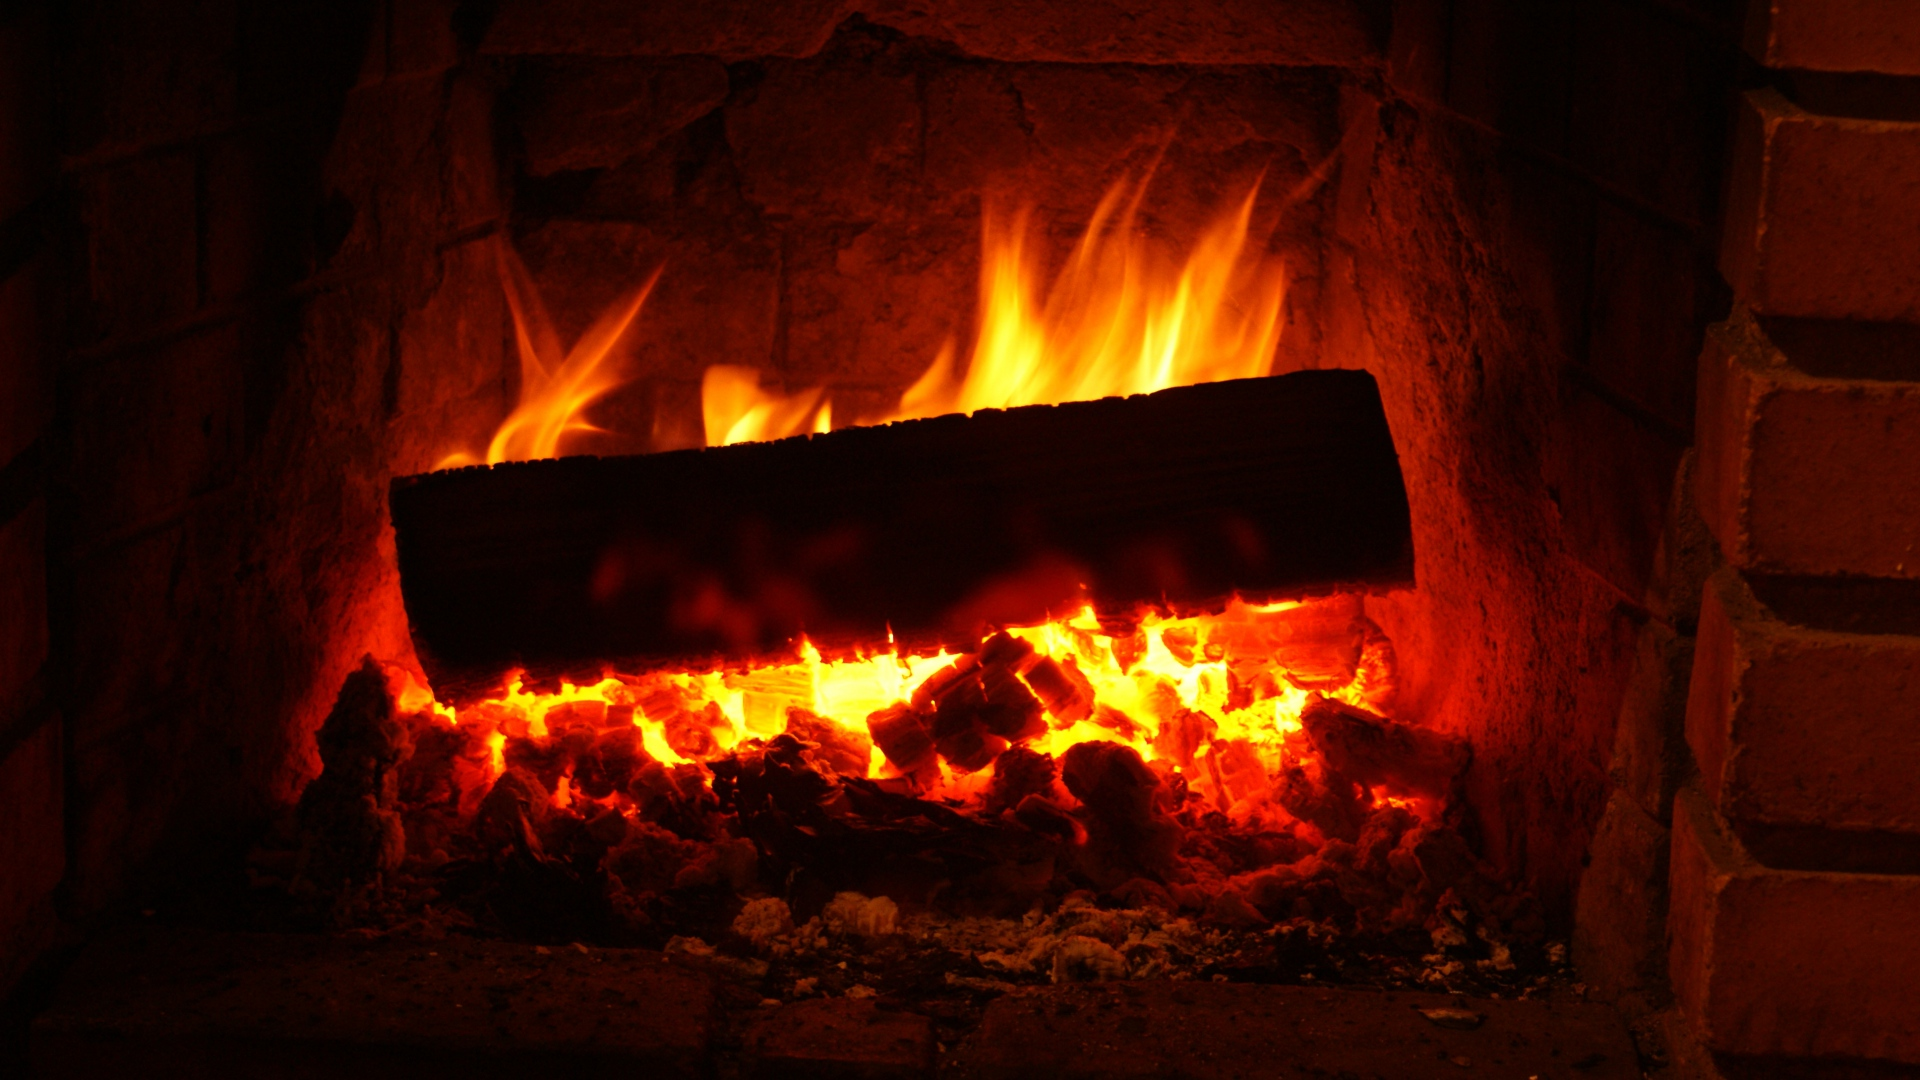 Fireplace Wallpapers Archives Hdwallsourcecom